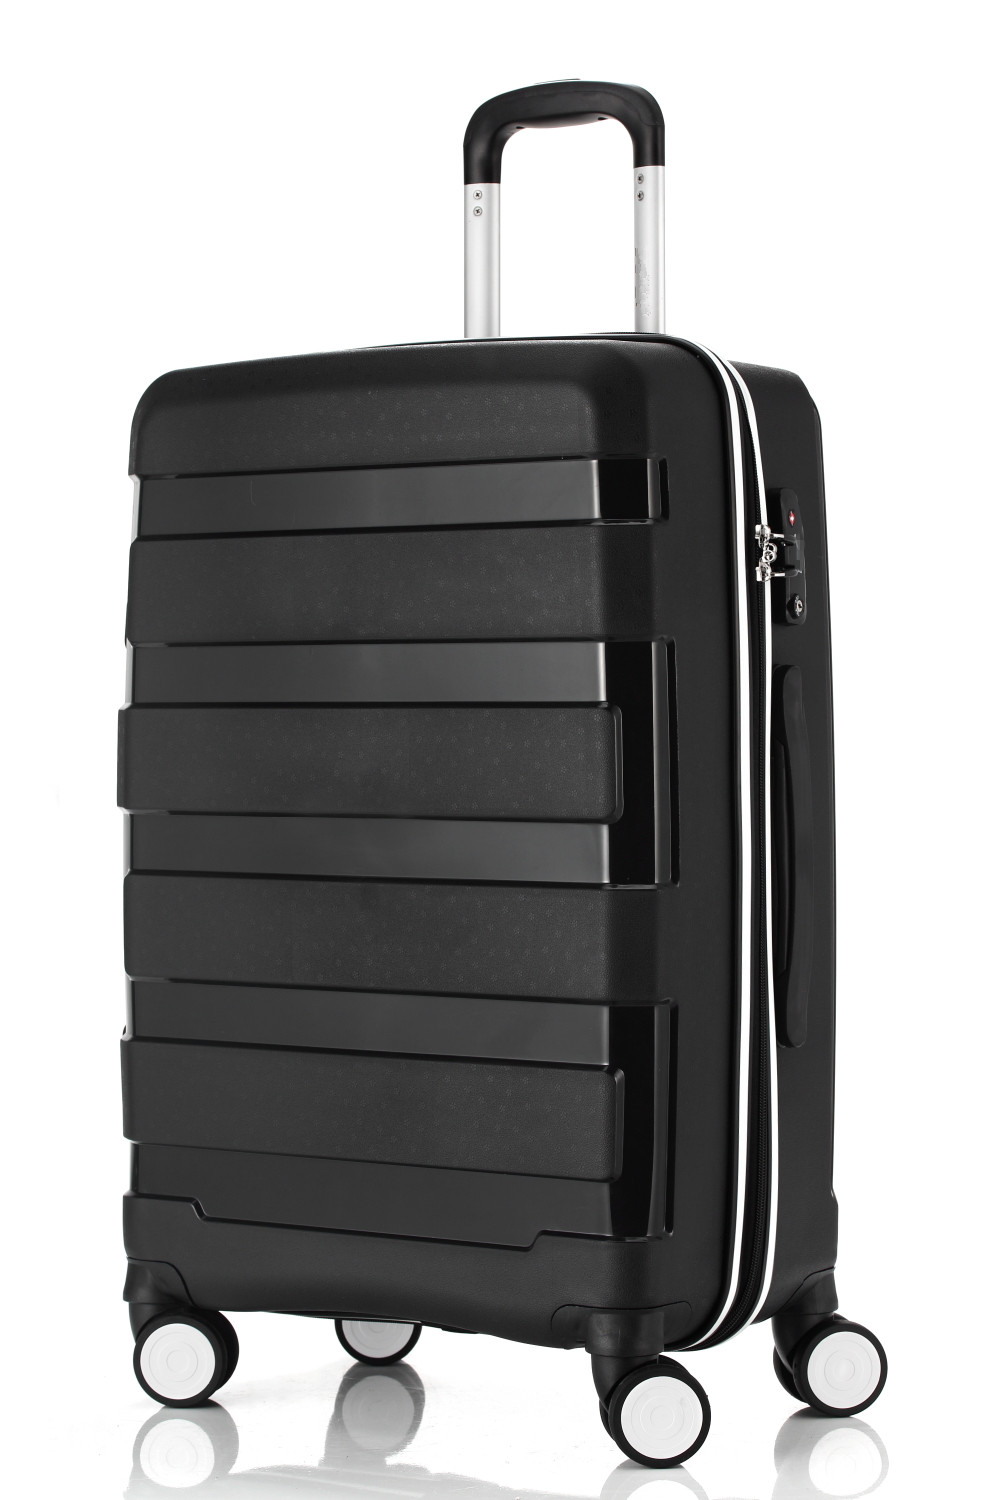 yanteng classic pure PP trolley suitcases in blue color